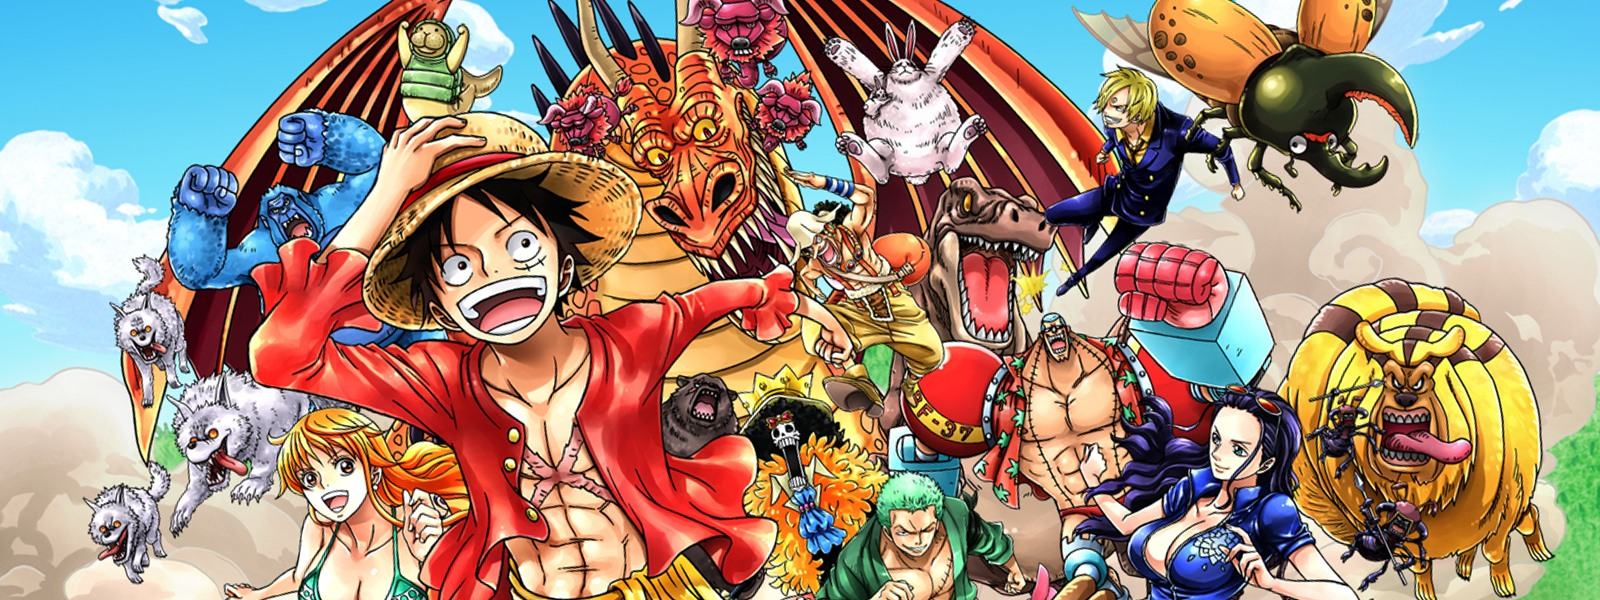 Chase Anime Japan War One Piece Fighting Action Pirates Adventure ...